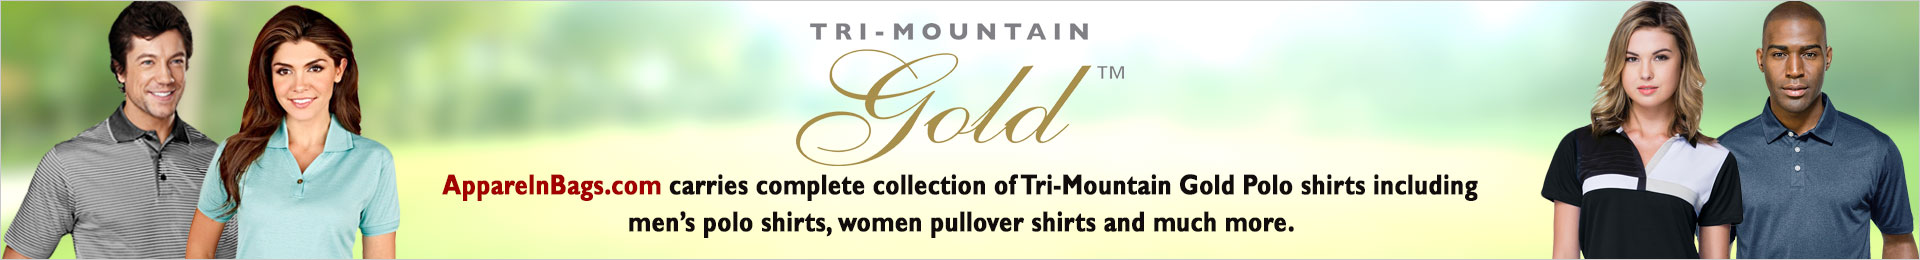 Tri-Mountain Gold Polo And Sports Shirts